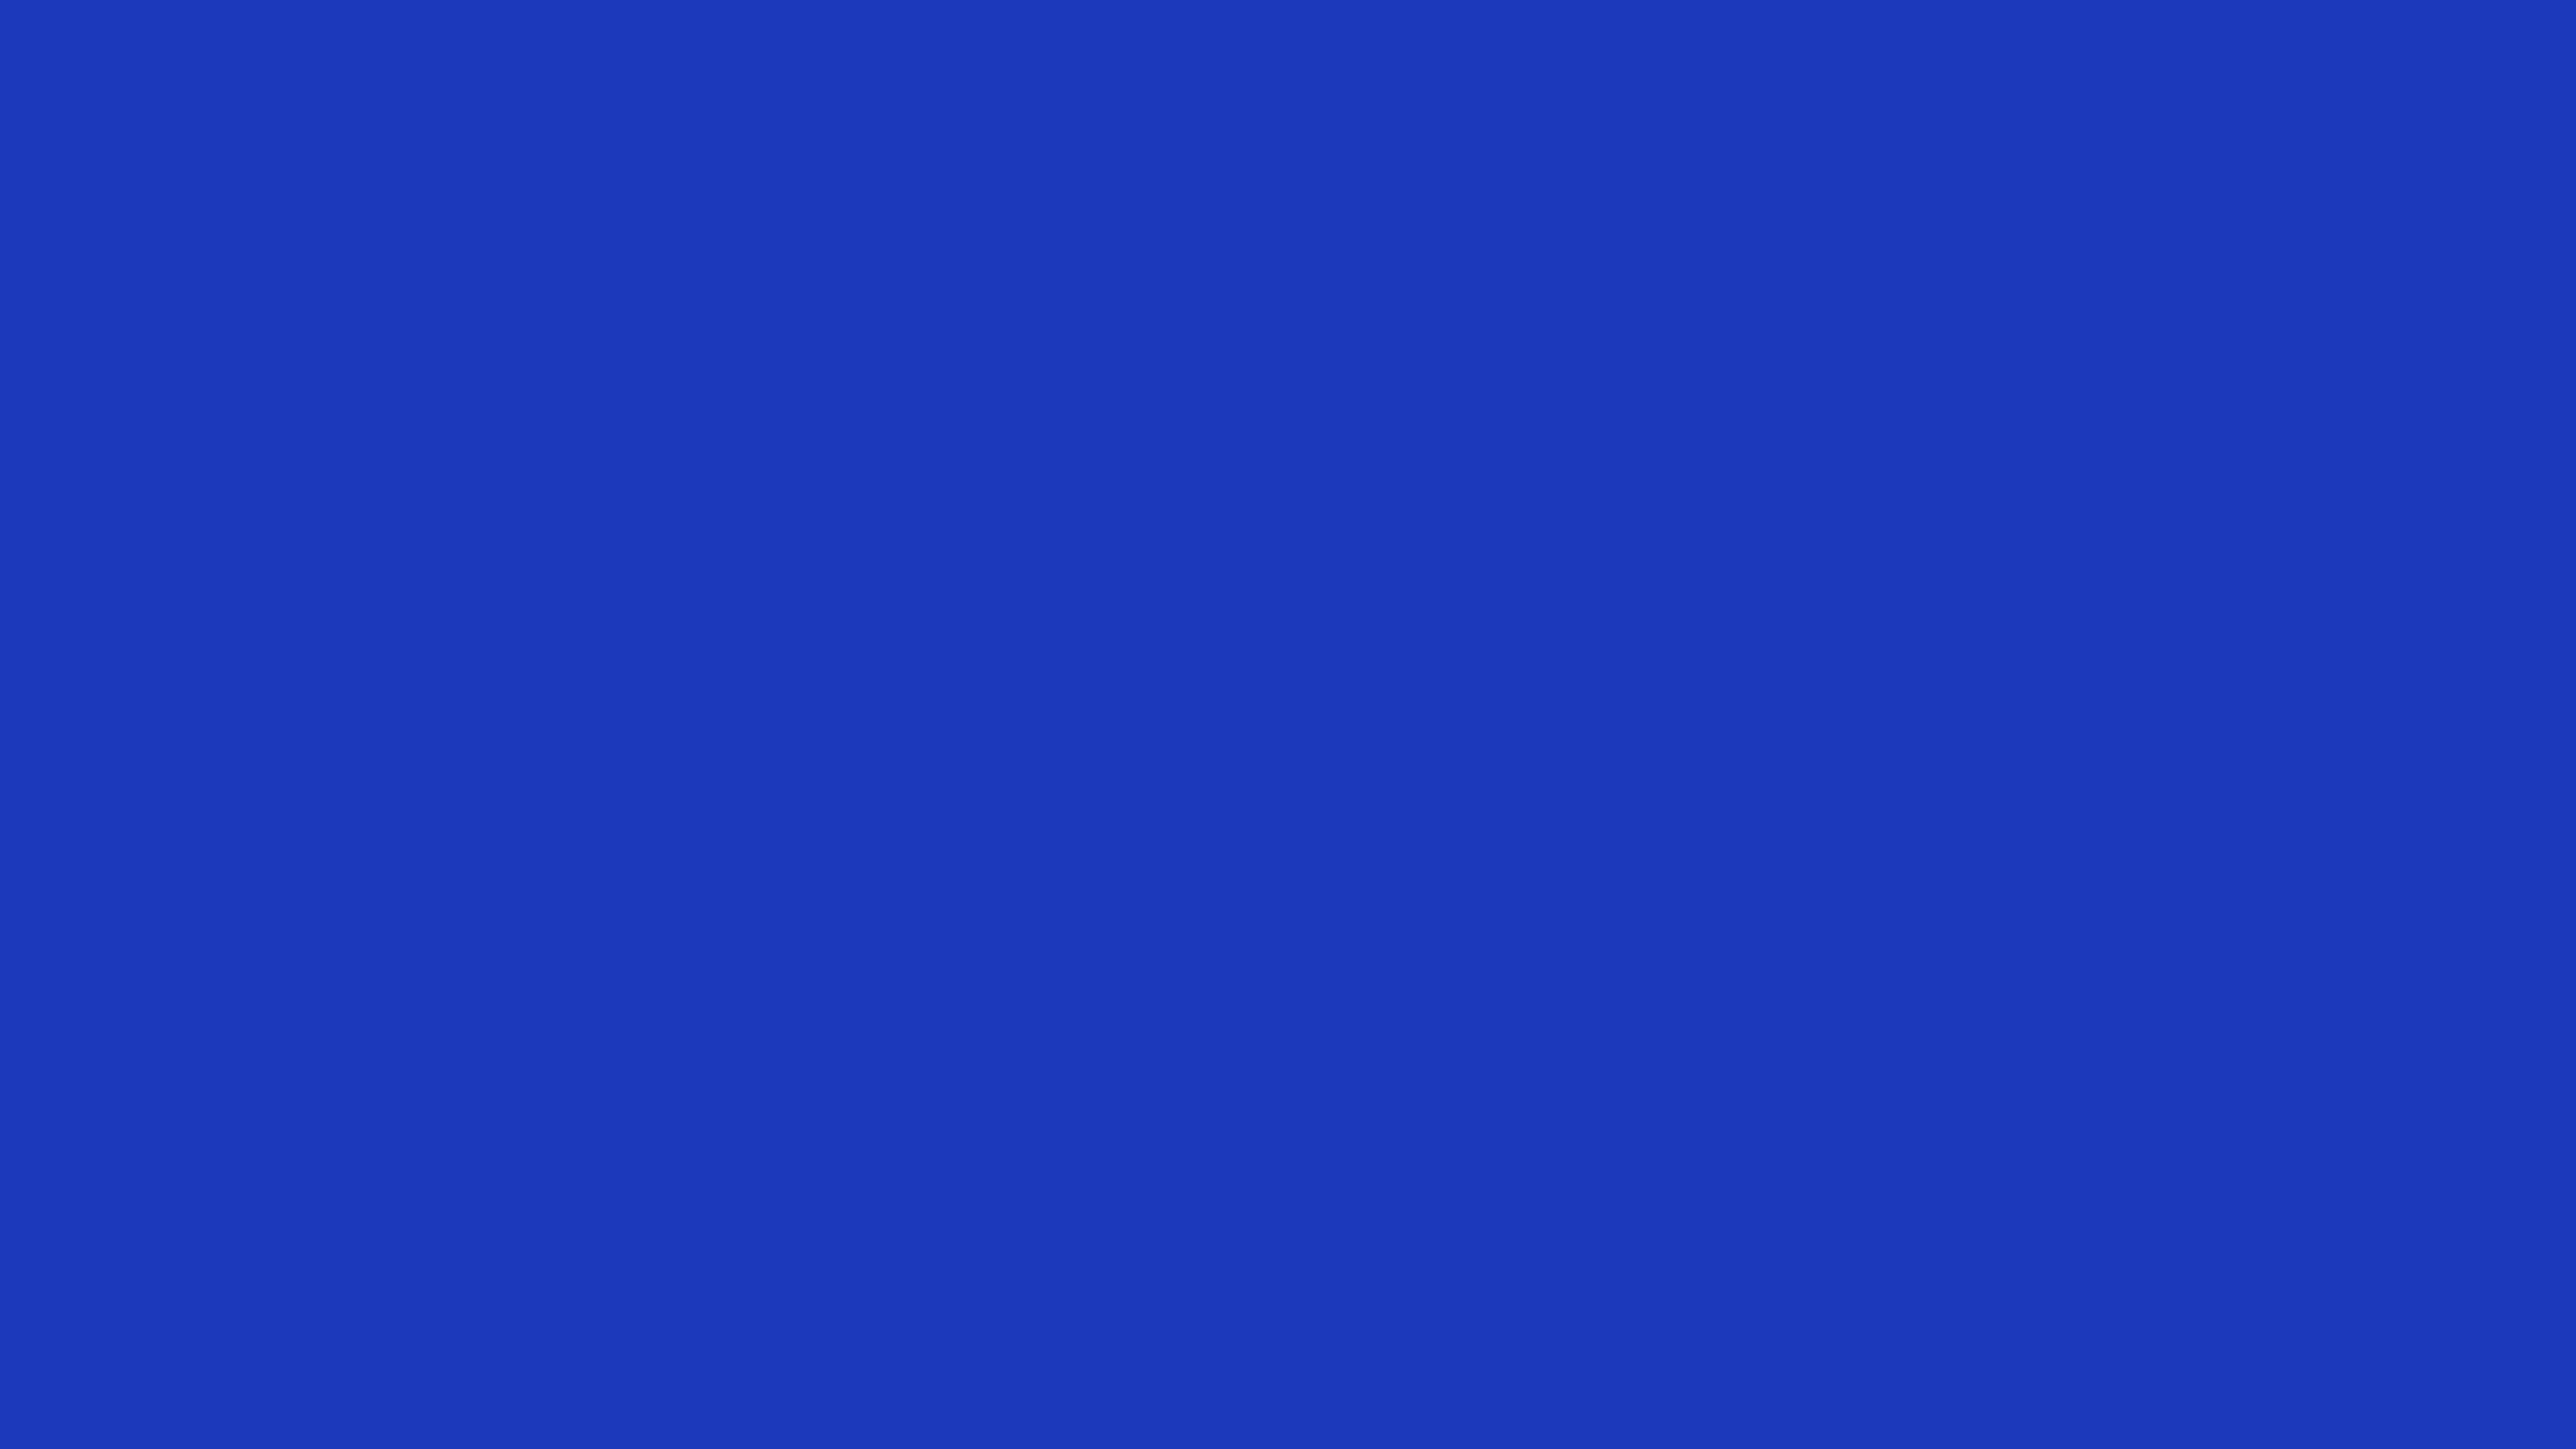 3840x2160 Persian Blue Solid Color Background